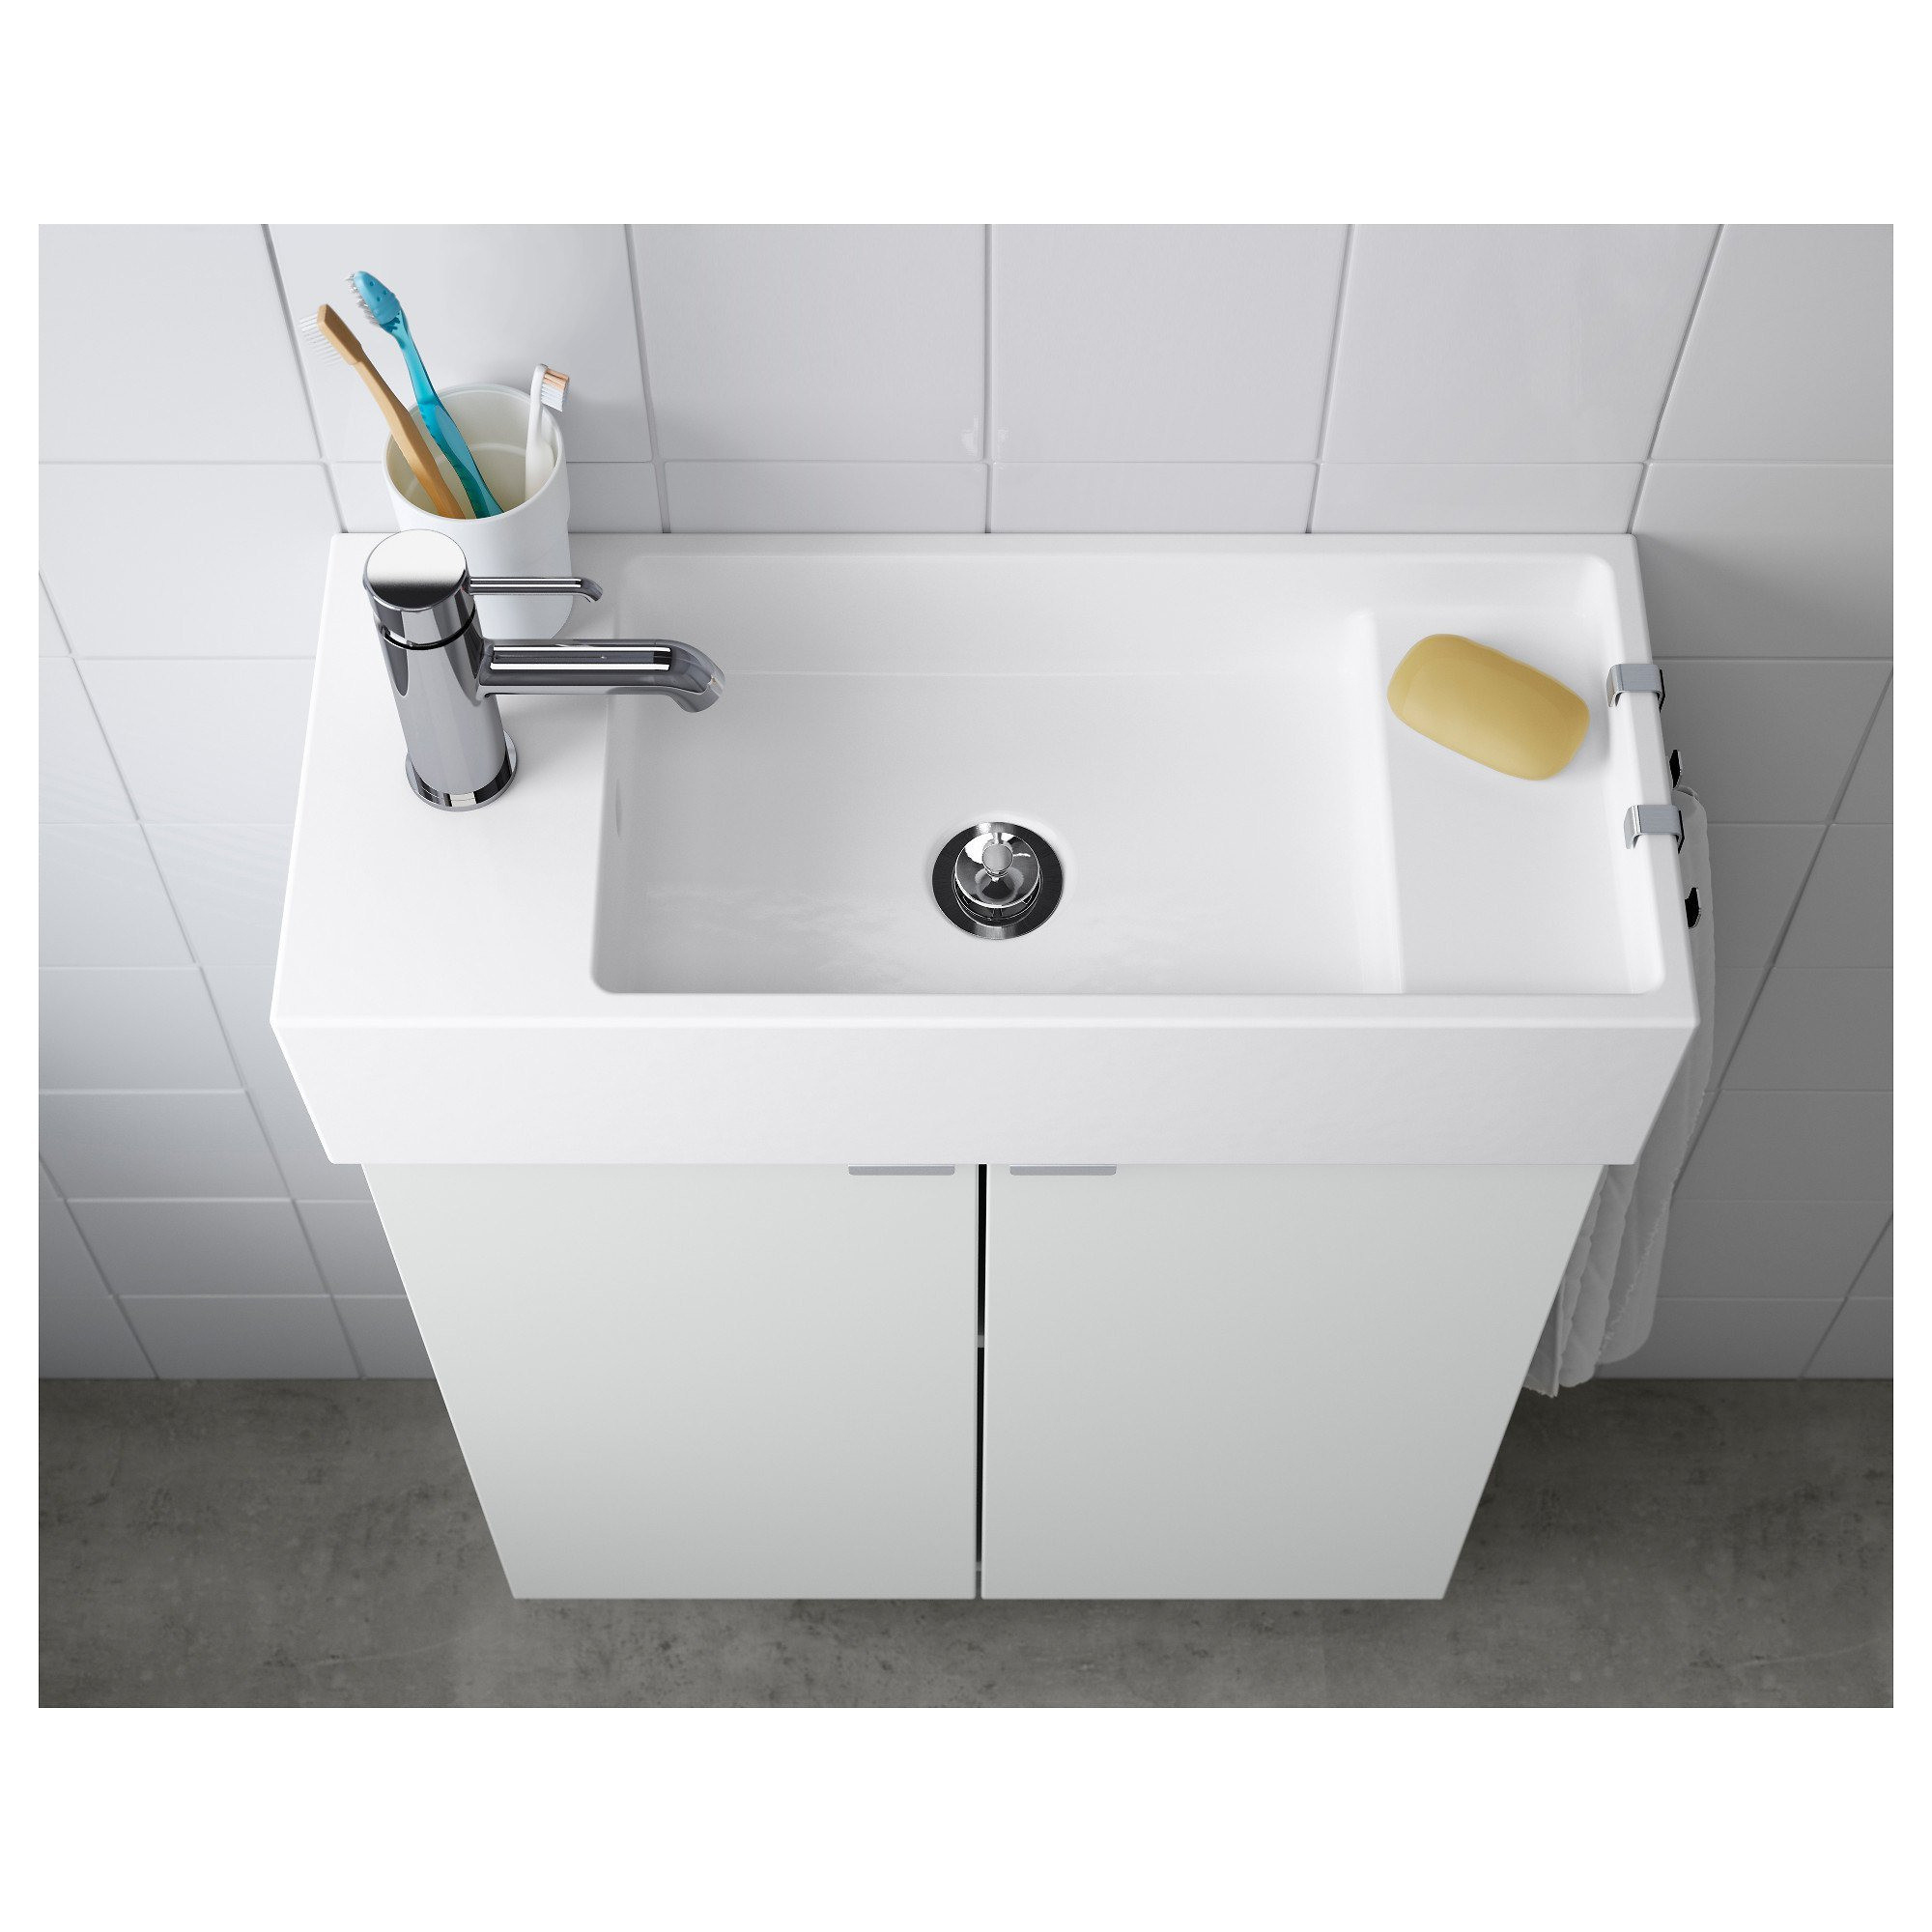 Bathroom Walls Materials Of Enchanting With New Small White